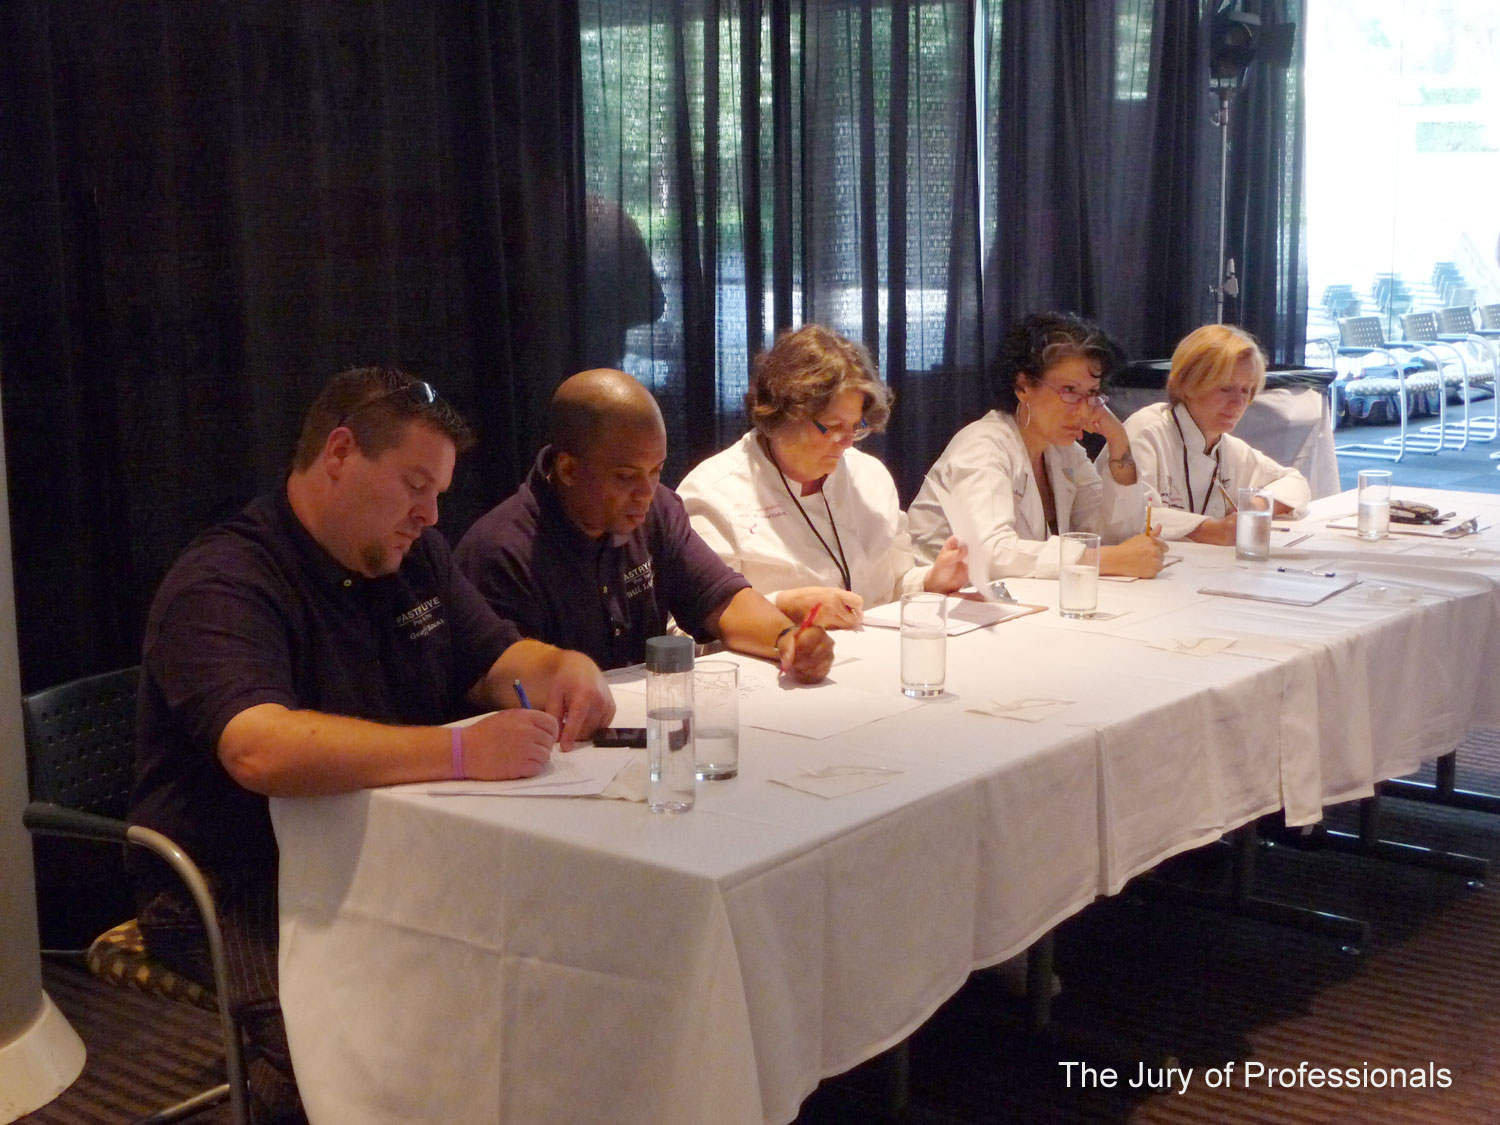 The Jury of Professionals